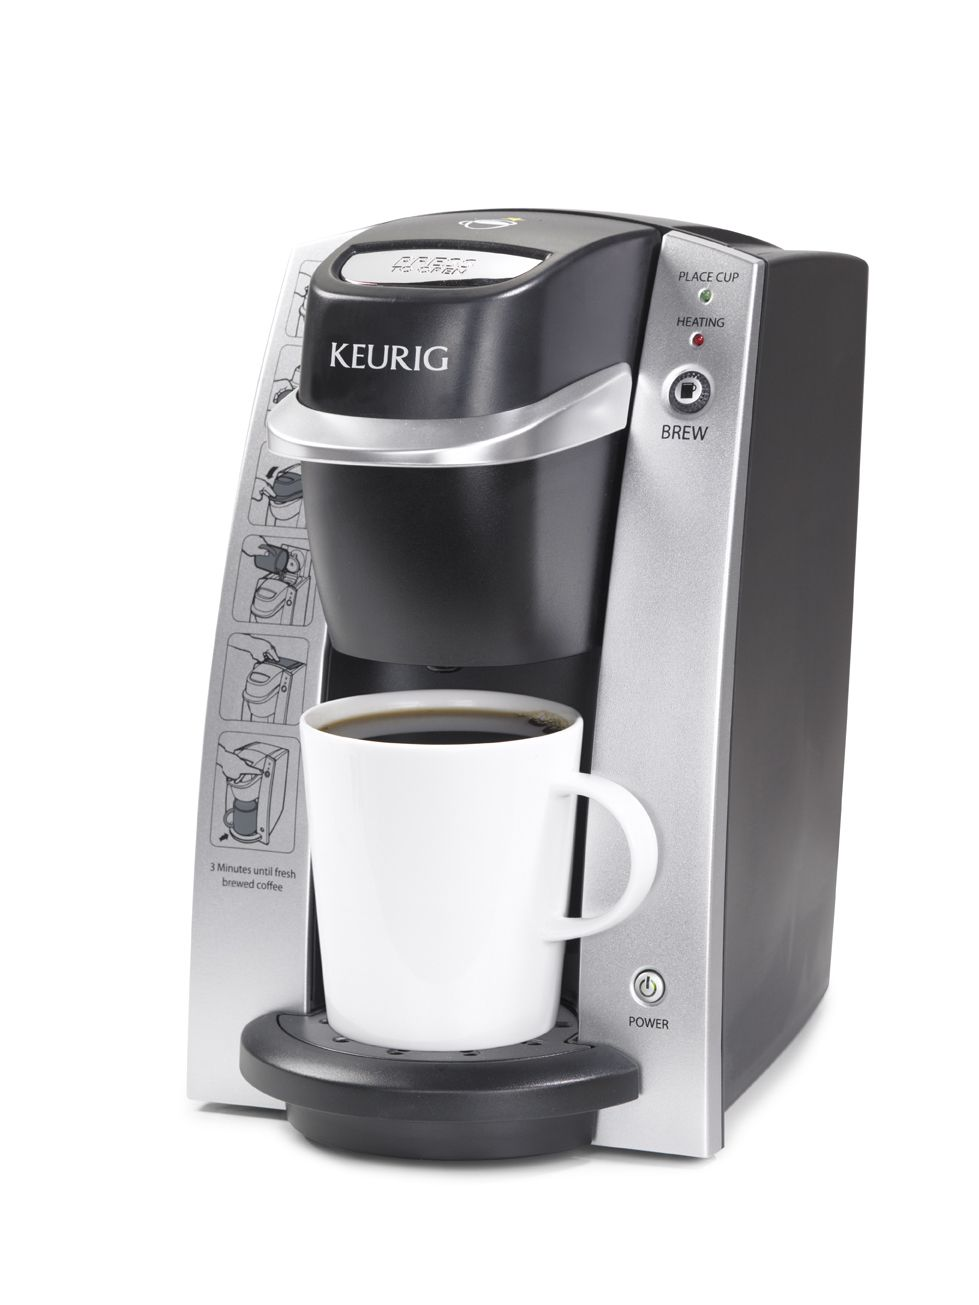 The Keurig B130 DeskPro is a compact and convenient one